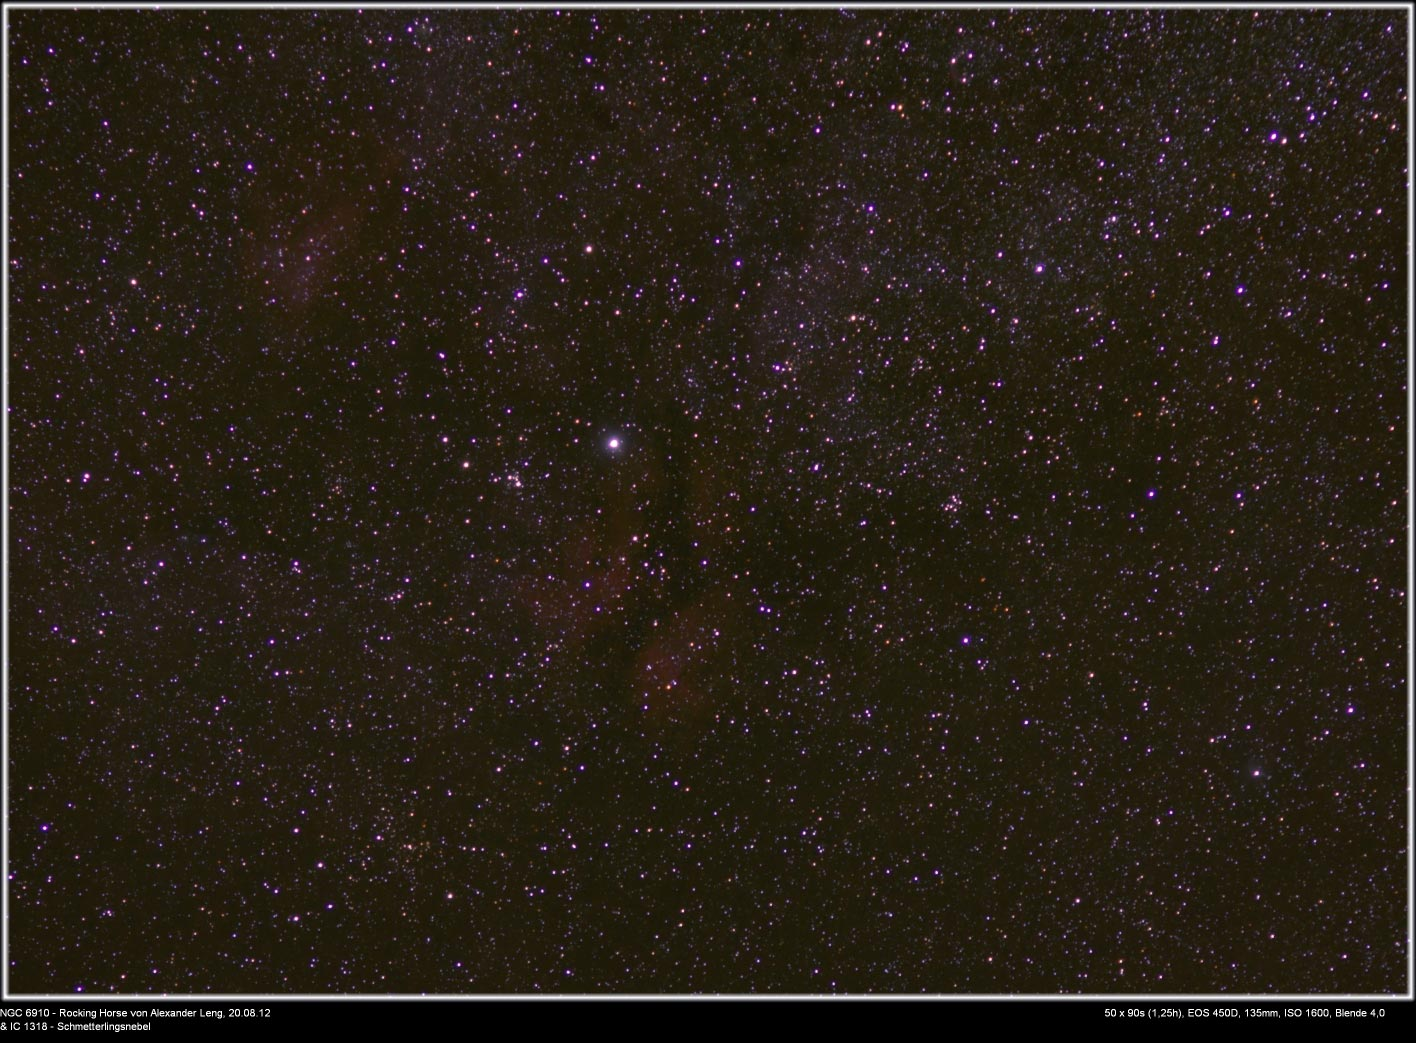 NGC 6910 rocking horse cluster und IC 1318 Schmetterlingsnebel